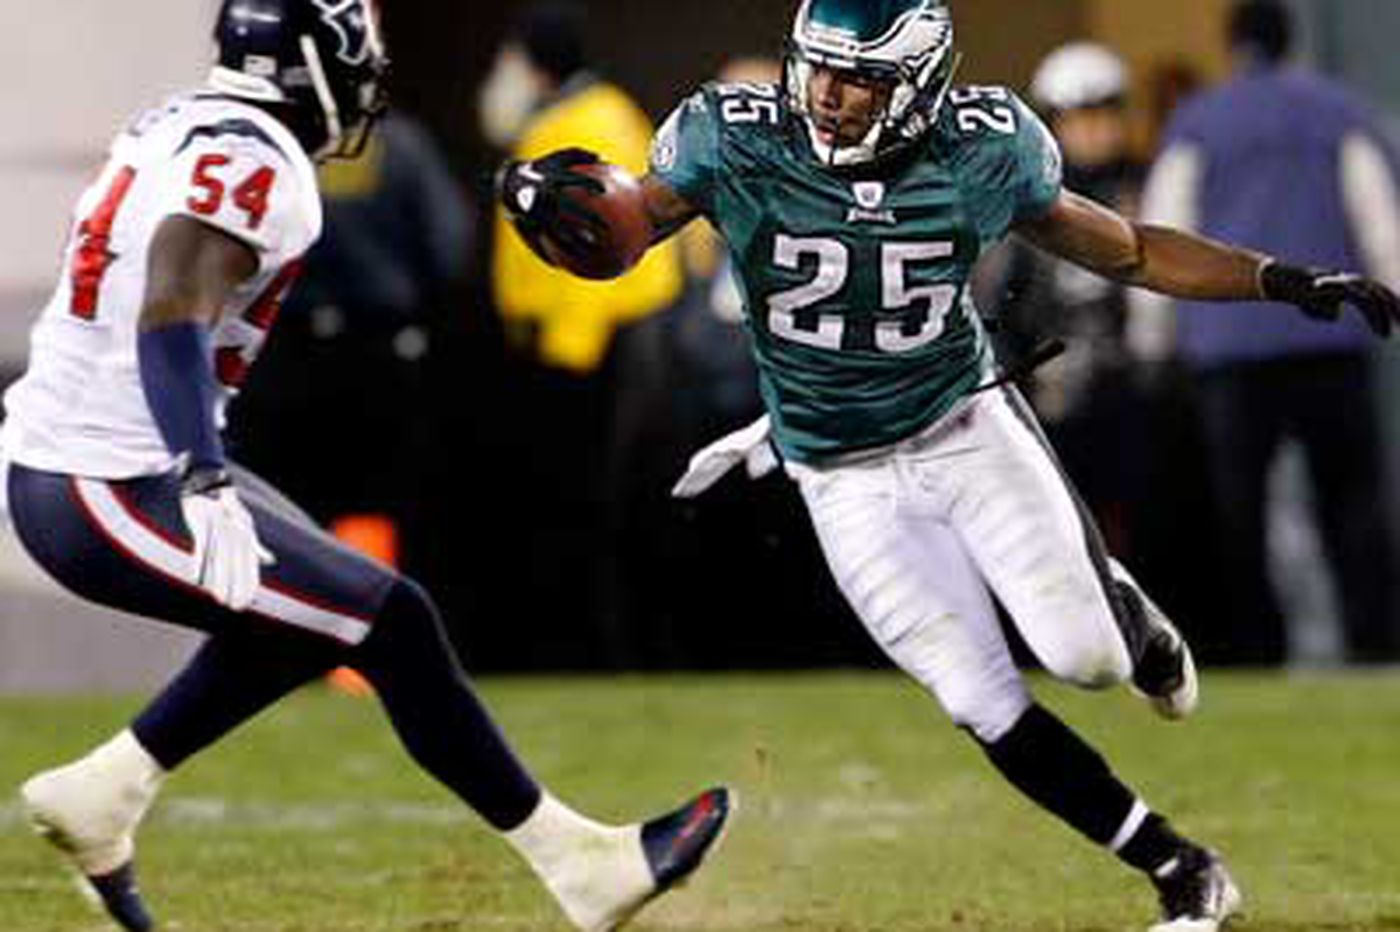 Paul Domowitch: Eagles' McCoy producing his own screen gems